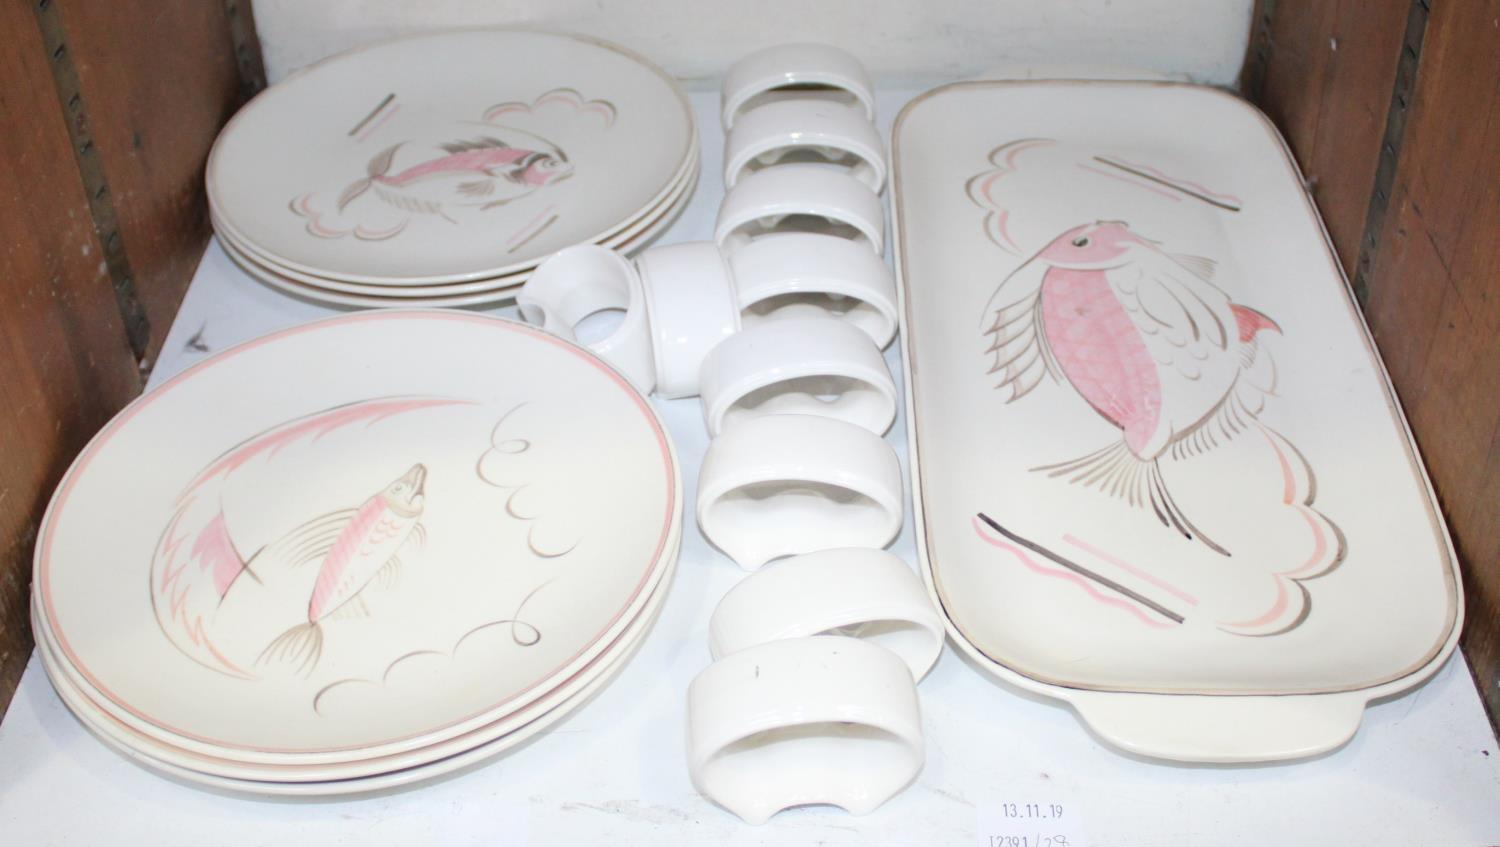 Lot 28 - WITHDRAWN: SECTION 28. A circa 1950s Poole pottery set of six plates decorated with abstract fish